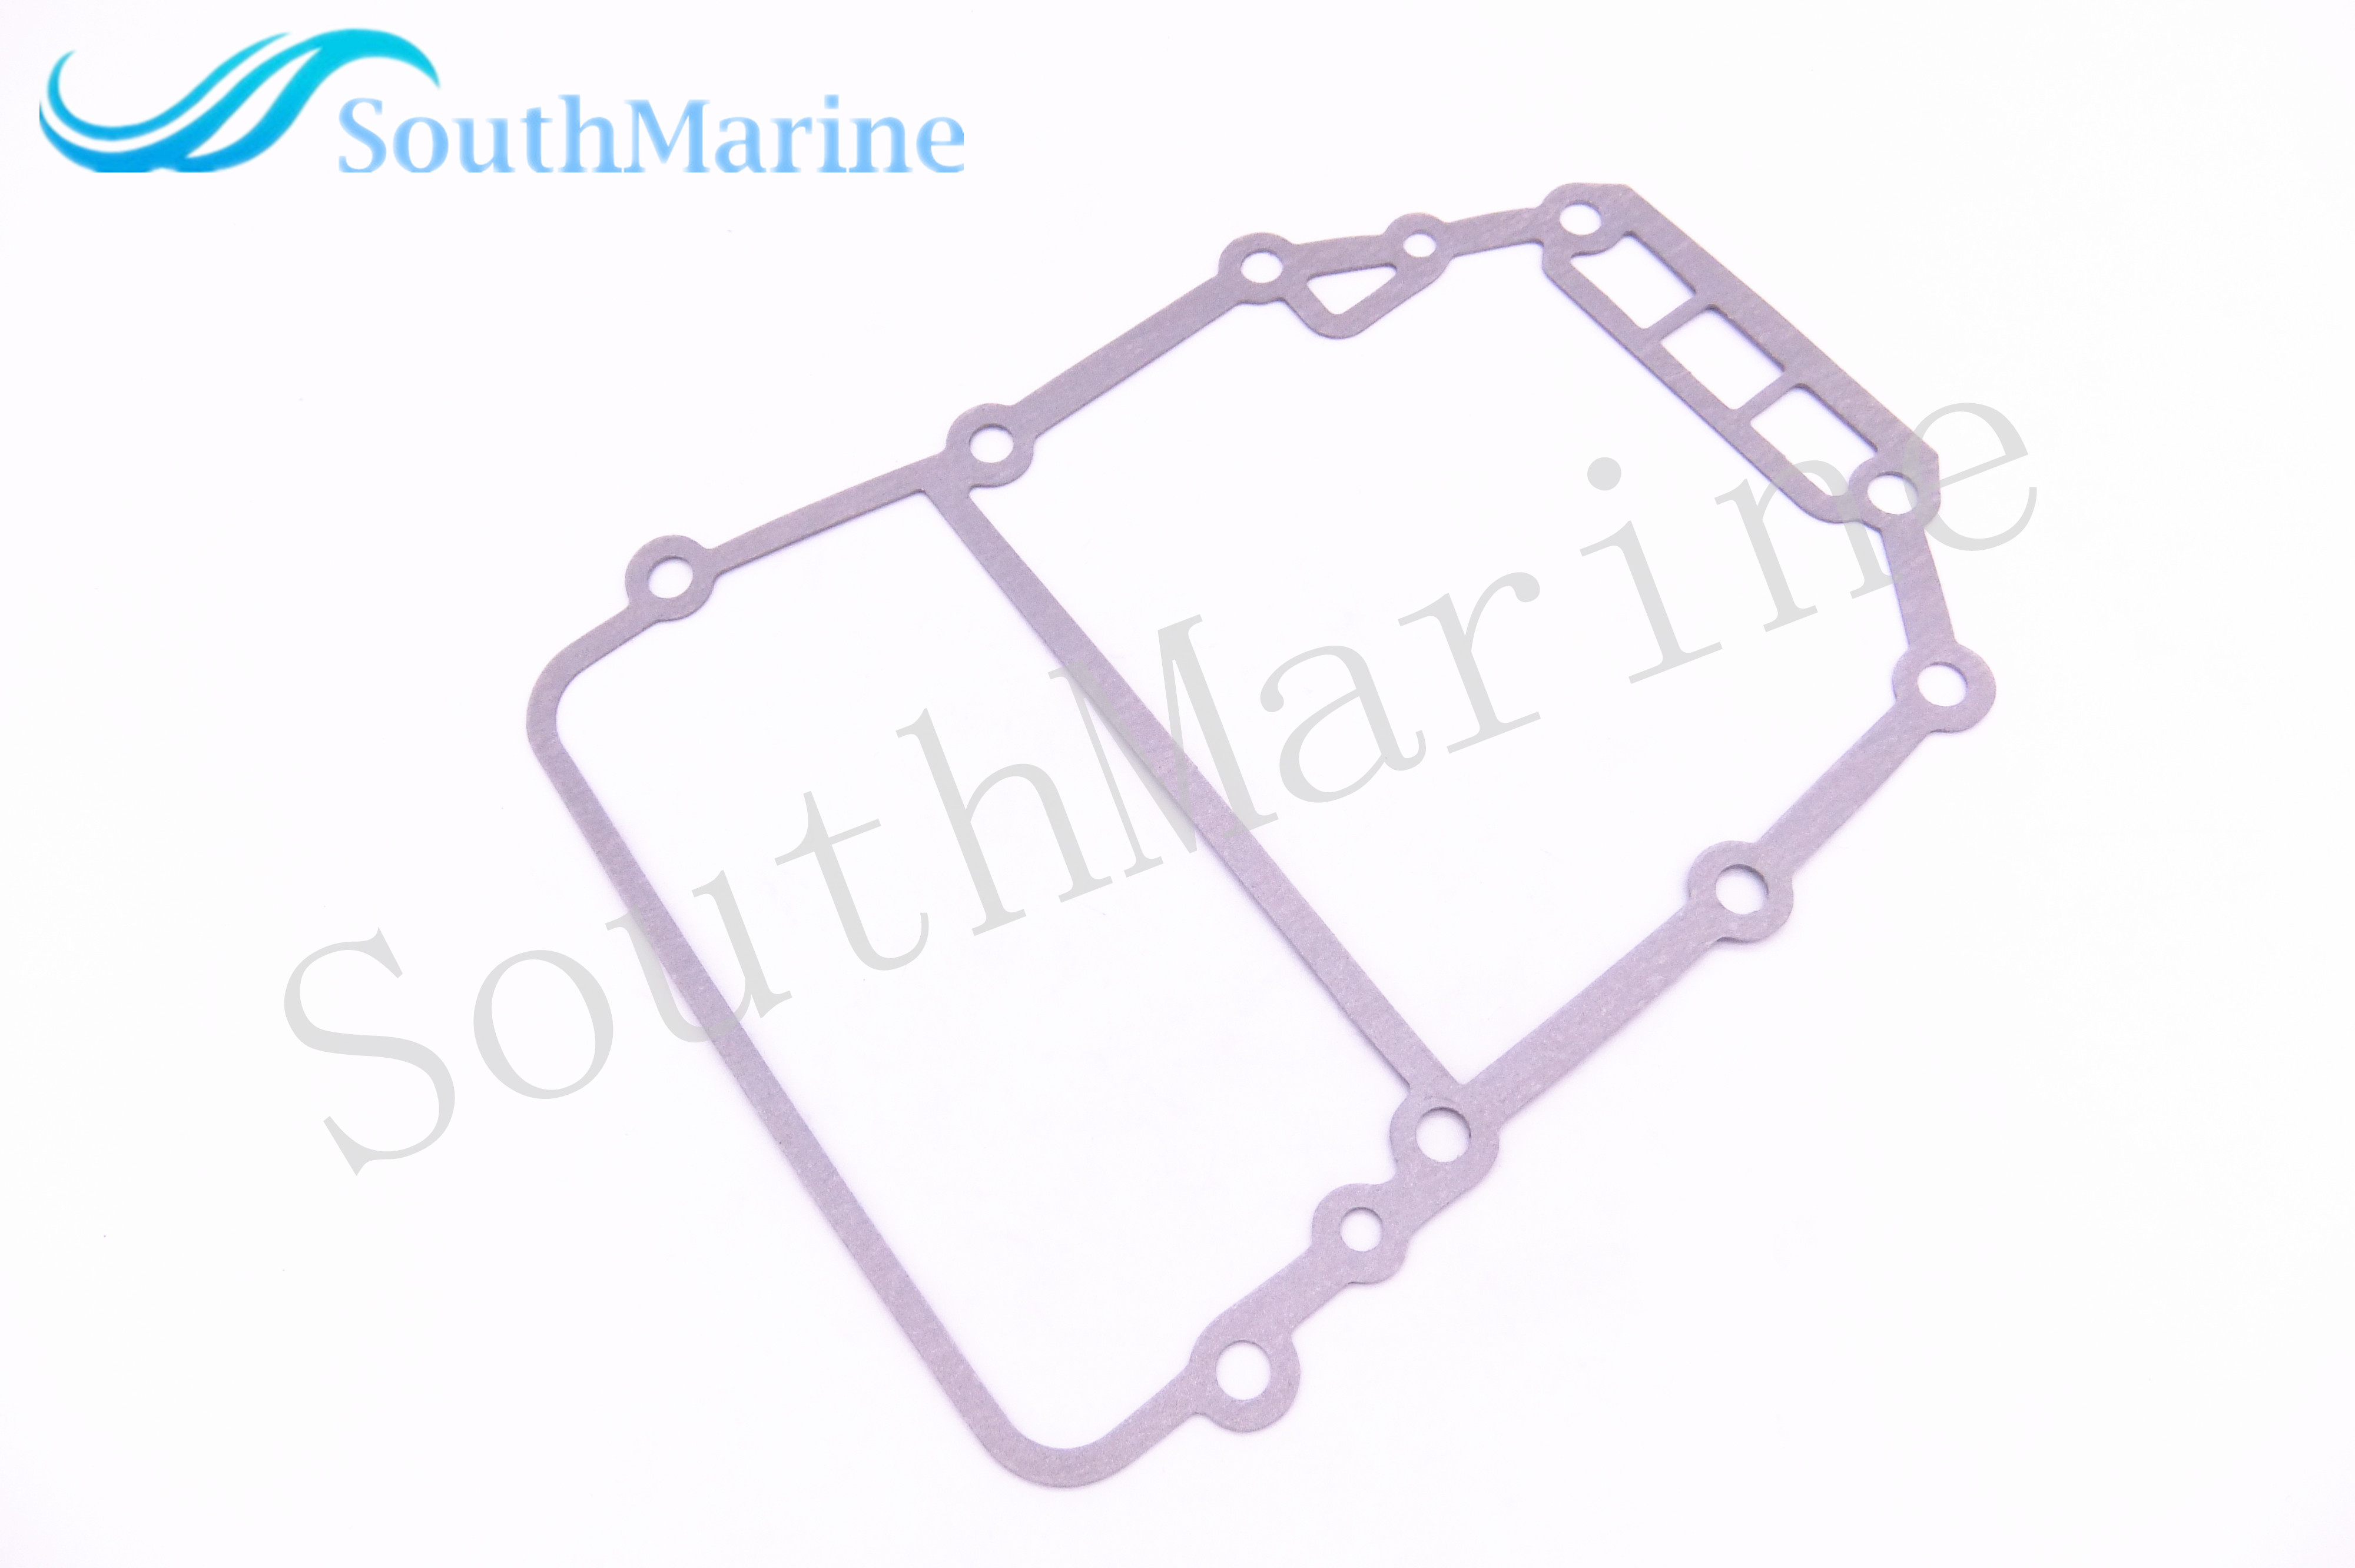 outboard engine 11434 94411 gasket under oil seal for suzuki 40hp dt40 dt40c boat motor in boat engine from automobiles motorcycles on aliexpress com  [ 4000 x 2664 Pixel ]